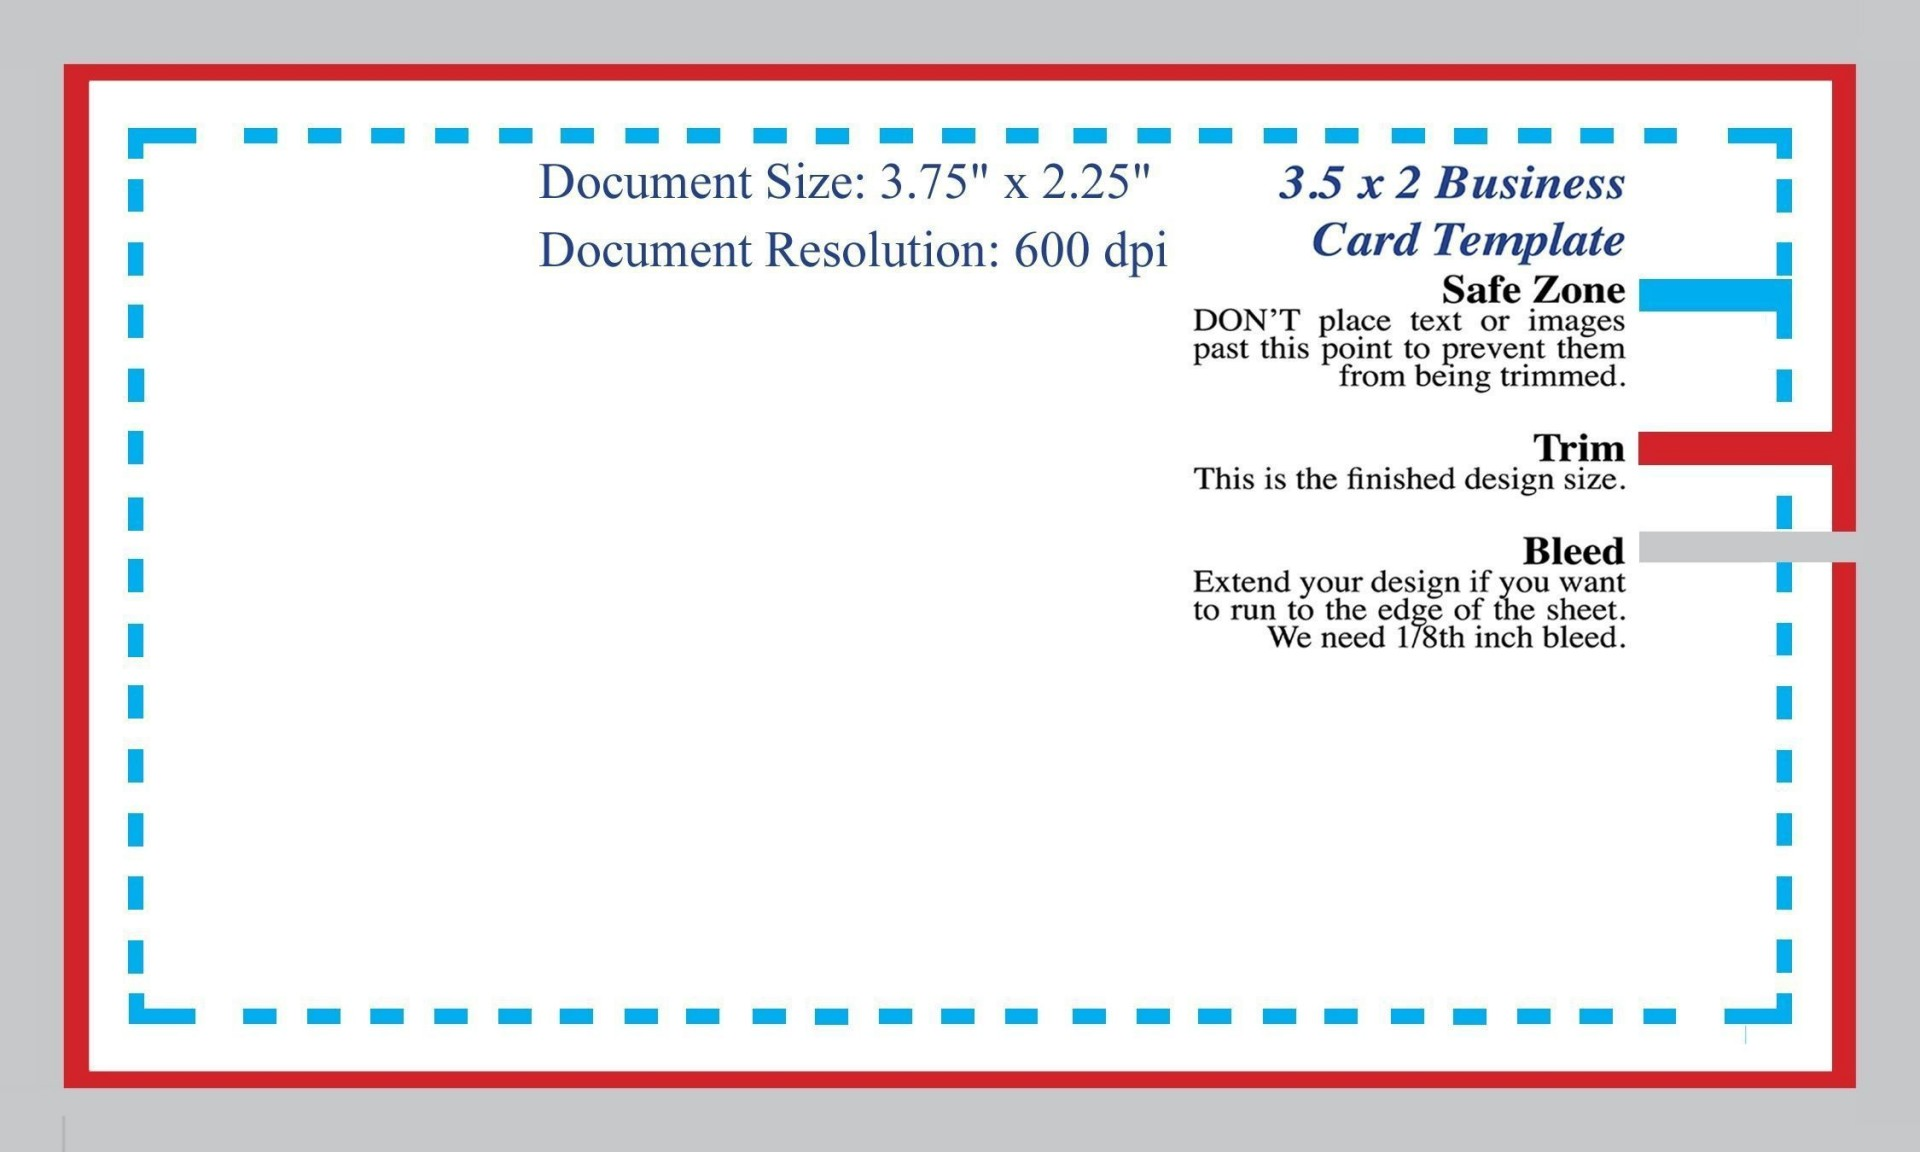 000 Awful Free Blank Busines Card Template Photoshop Highest Clarity  Download Psd1920